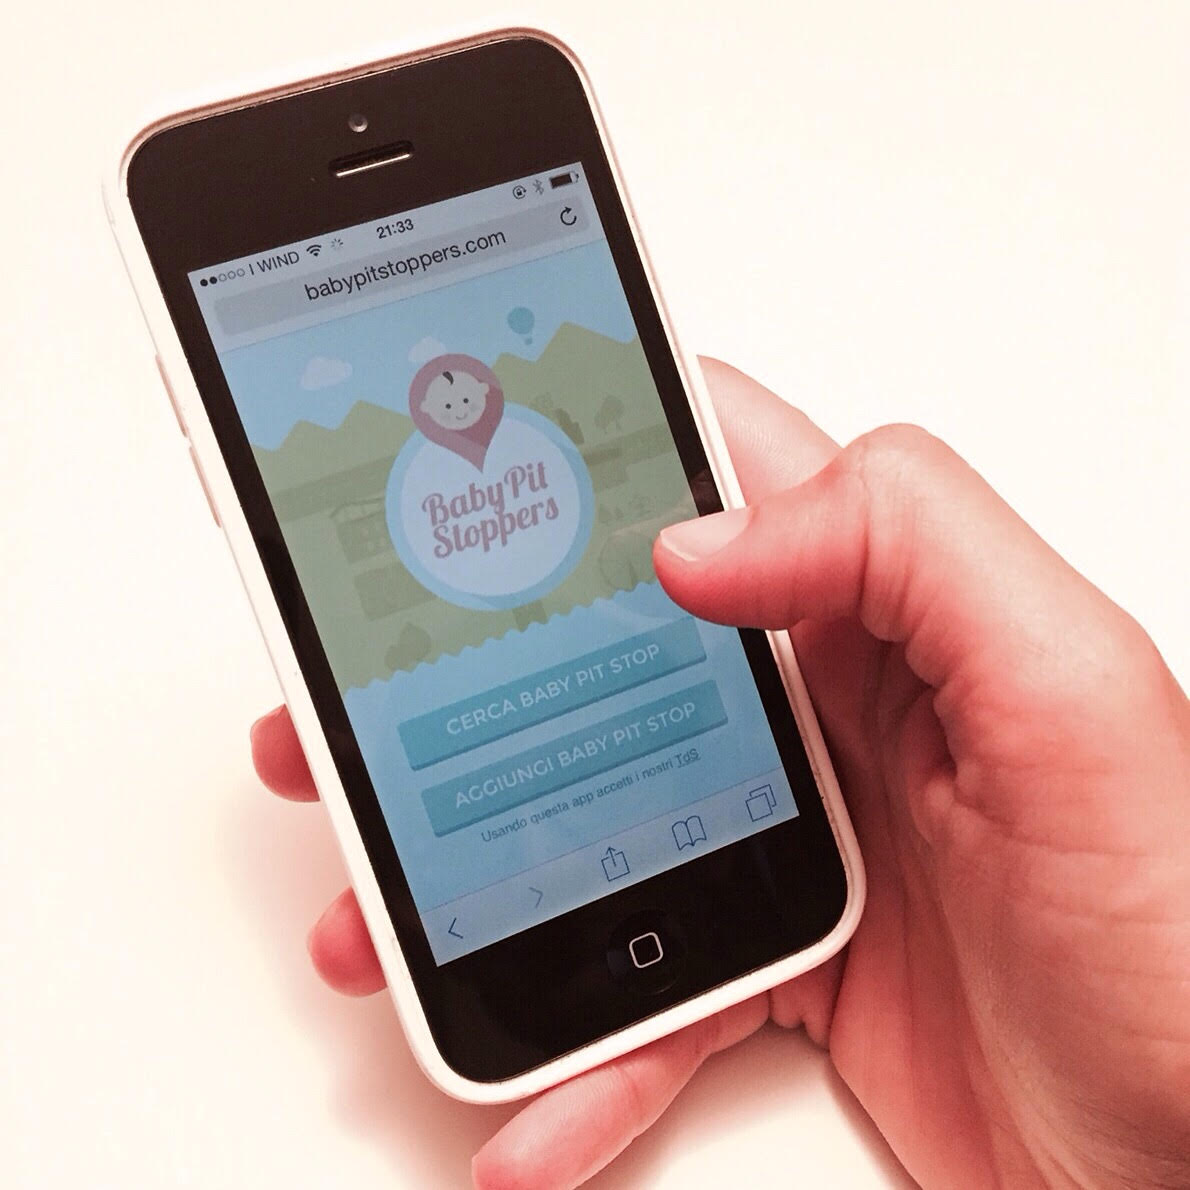 Baby pit stoppers l'app creata dalle donne per mappare i luoghi mum-friendly